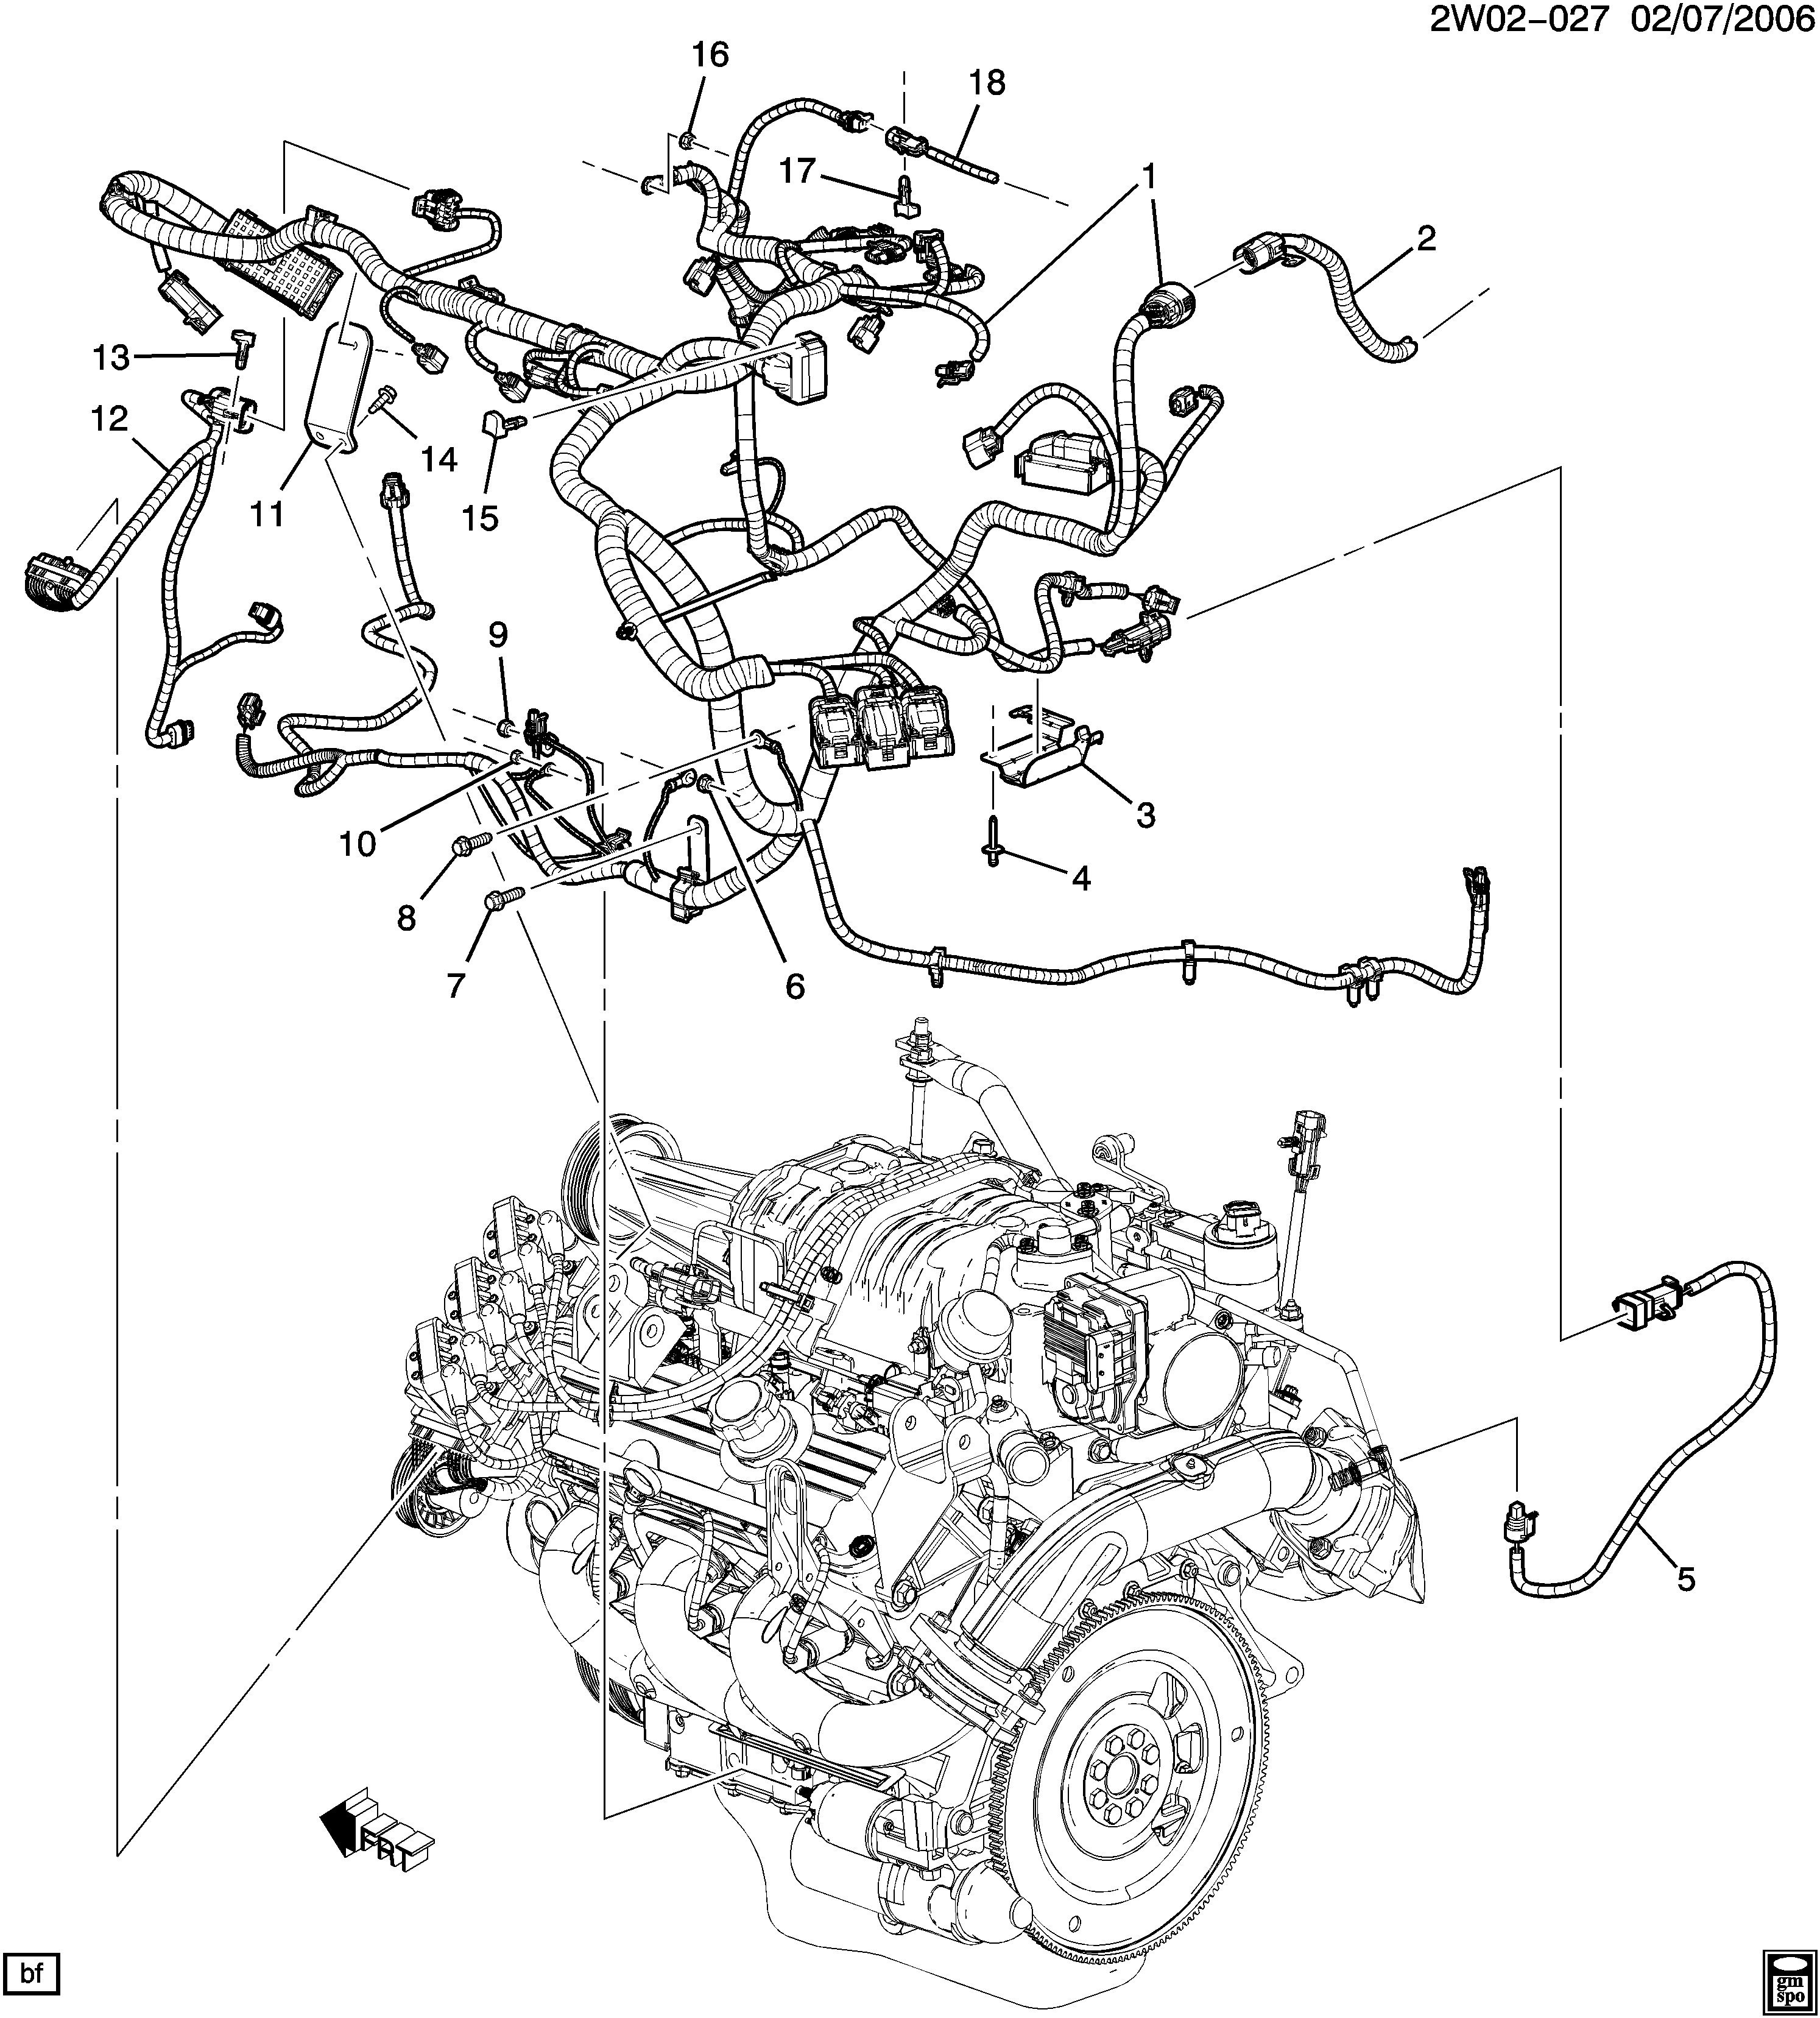 2006 Grand Prix Engine Diagram Pontiac Grand Prix W Wiring Harness Engine L32 3 8 4 Epc Of 2006 Grand Prix Engine Diagram